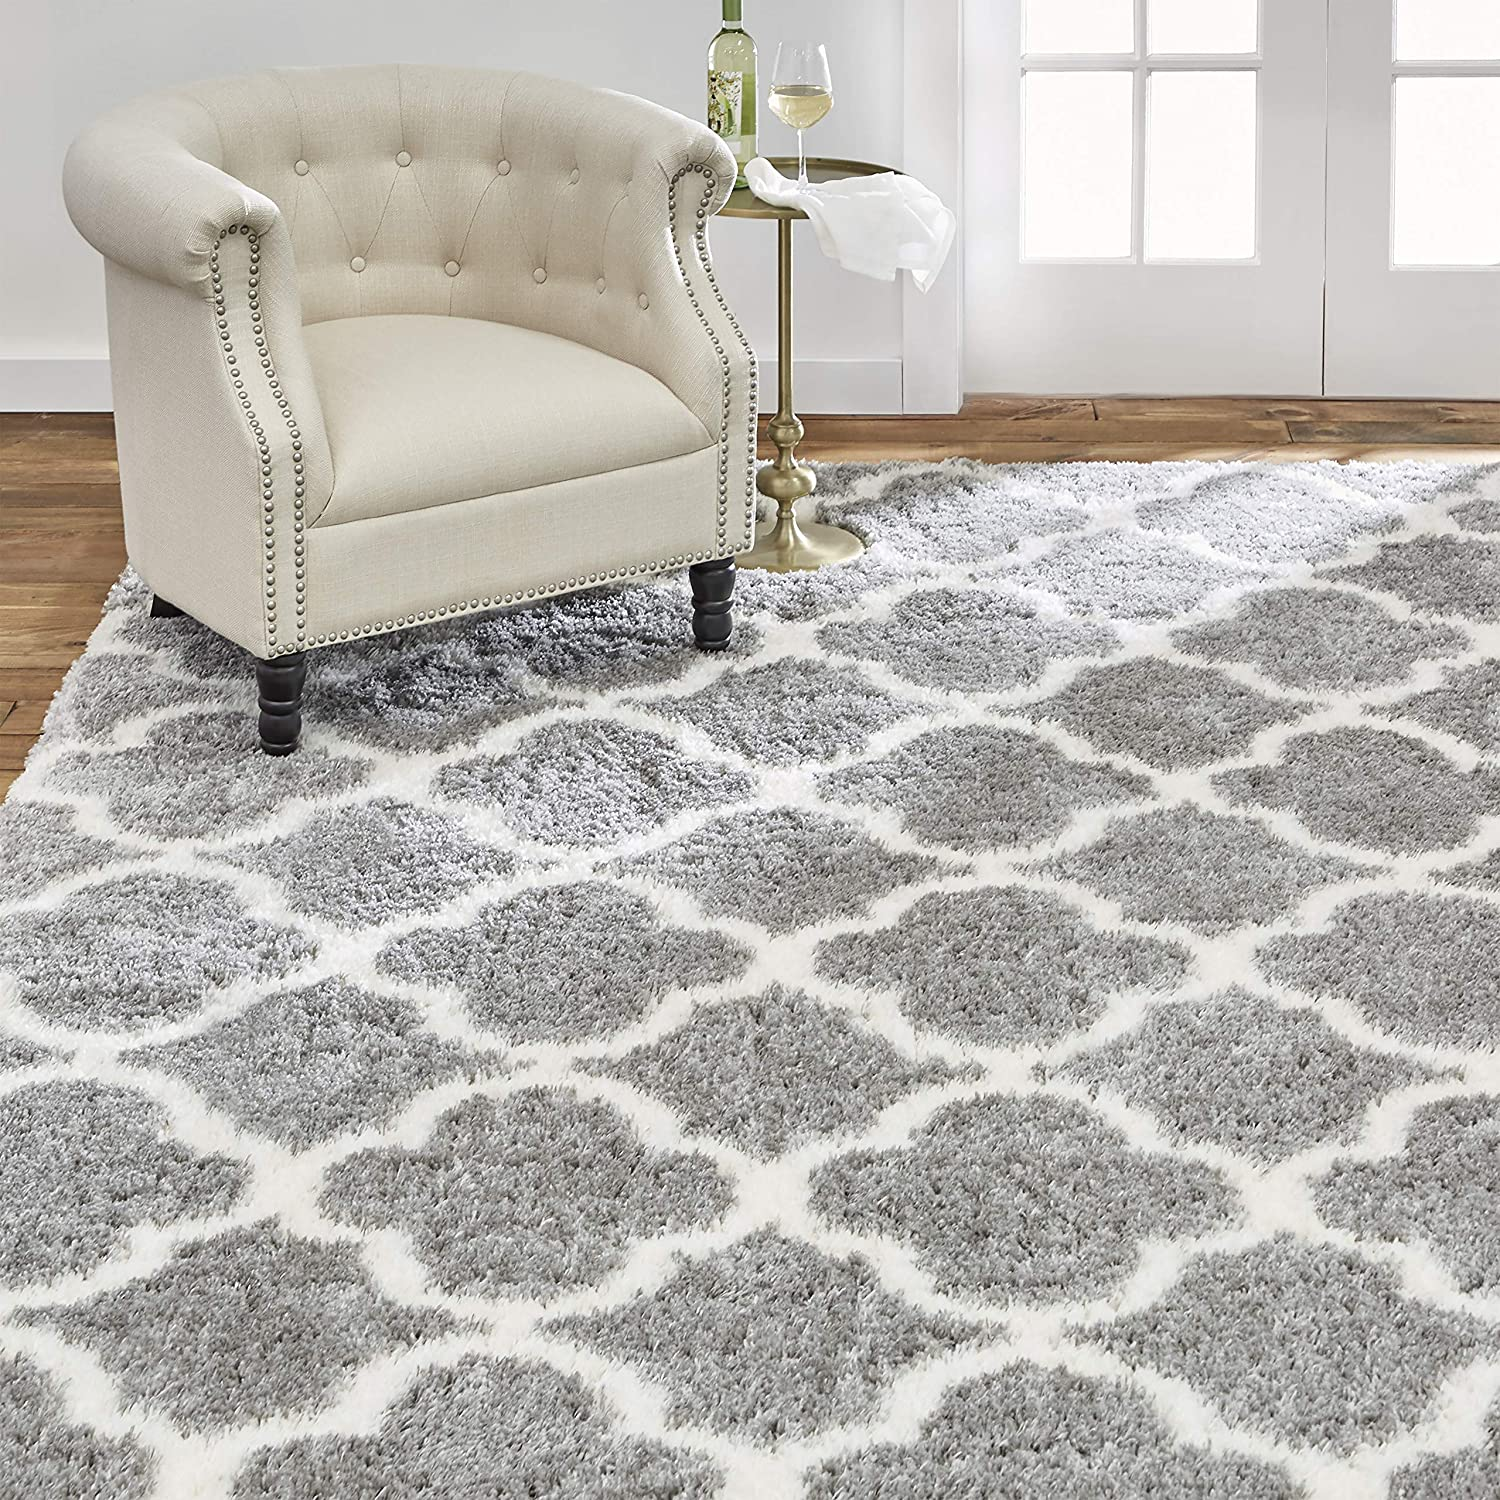 Safety and trust Home Dynamix Ventura Roslin Transitional Area New Shipping Free Modern Rug Silver